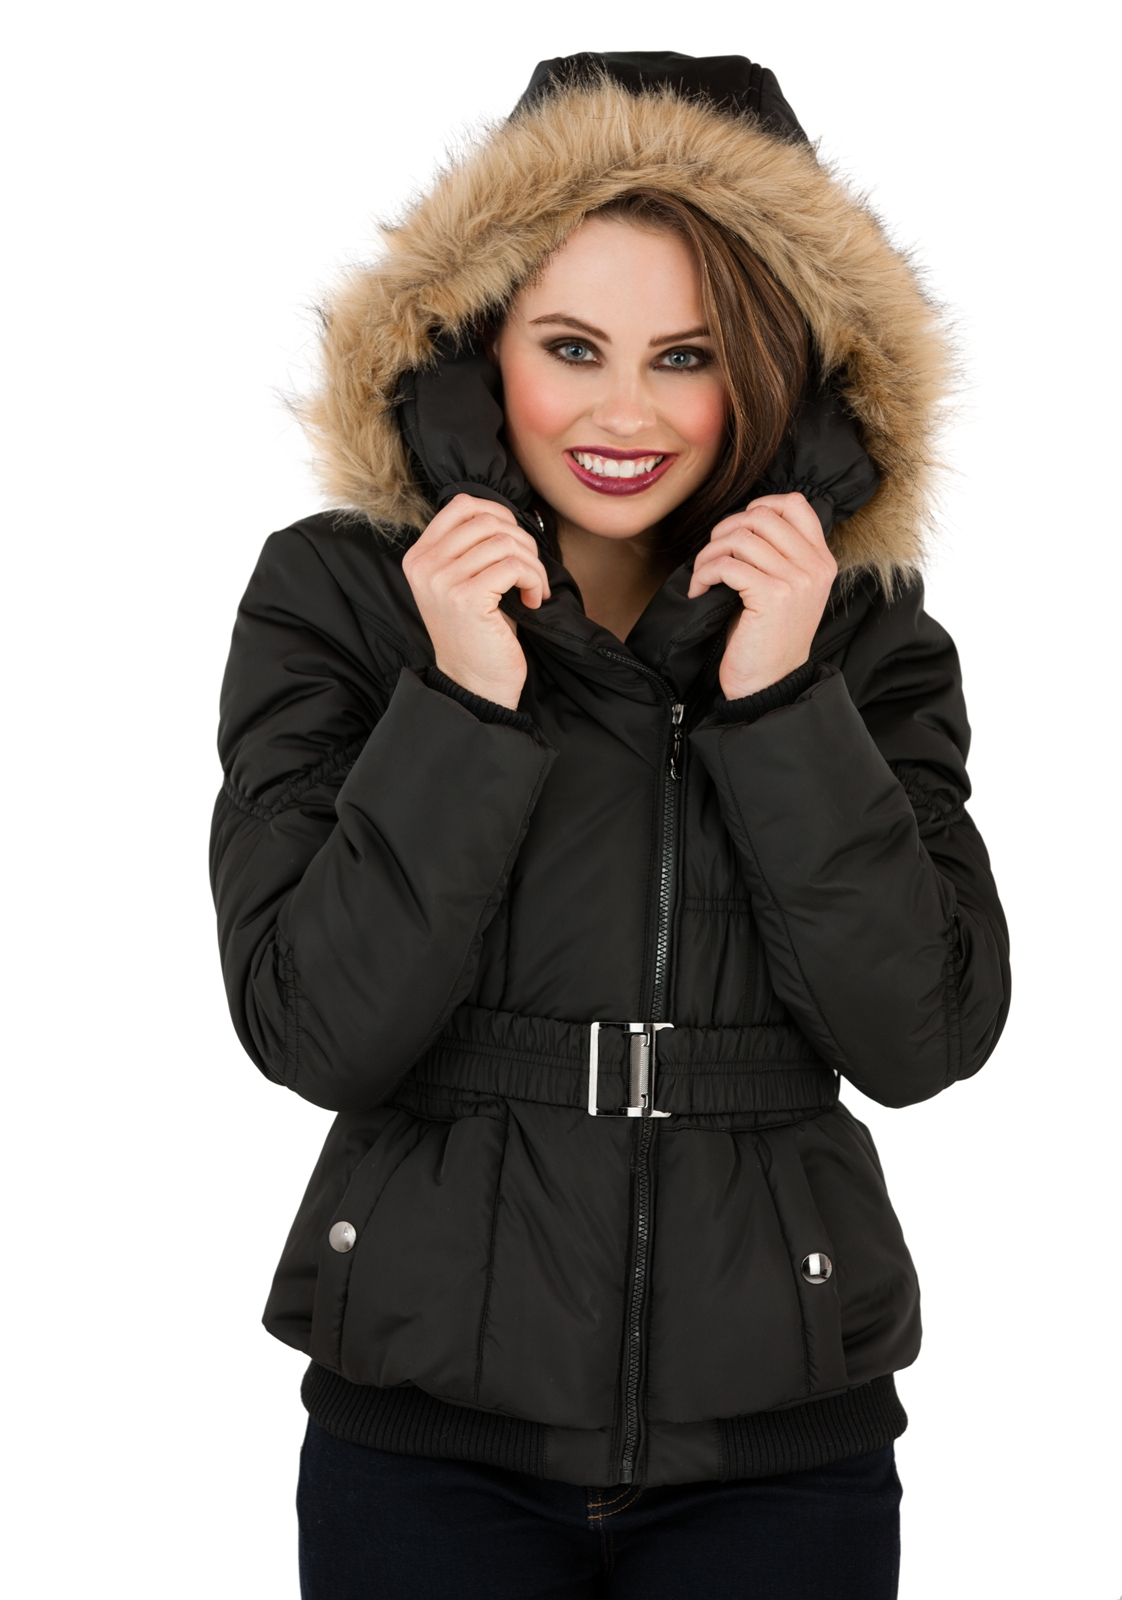 Shop a great selection of Coats & Jackets for Women at Nordstrom Rack. Find designer Coats & Jackets for Women up to 70% .